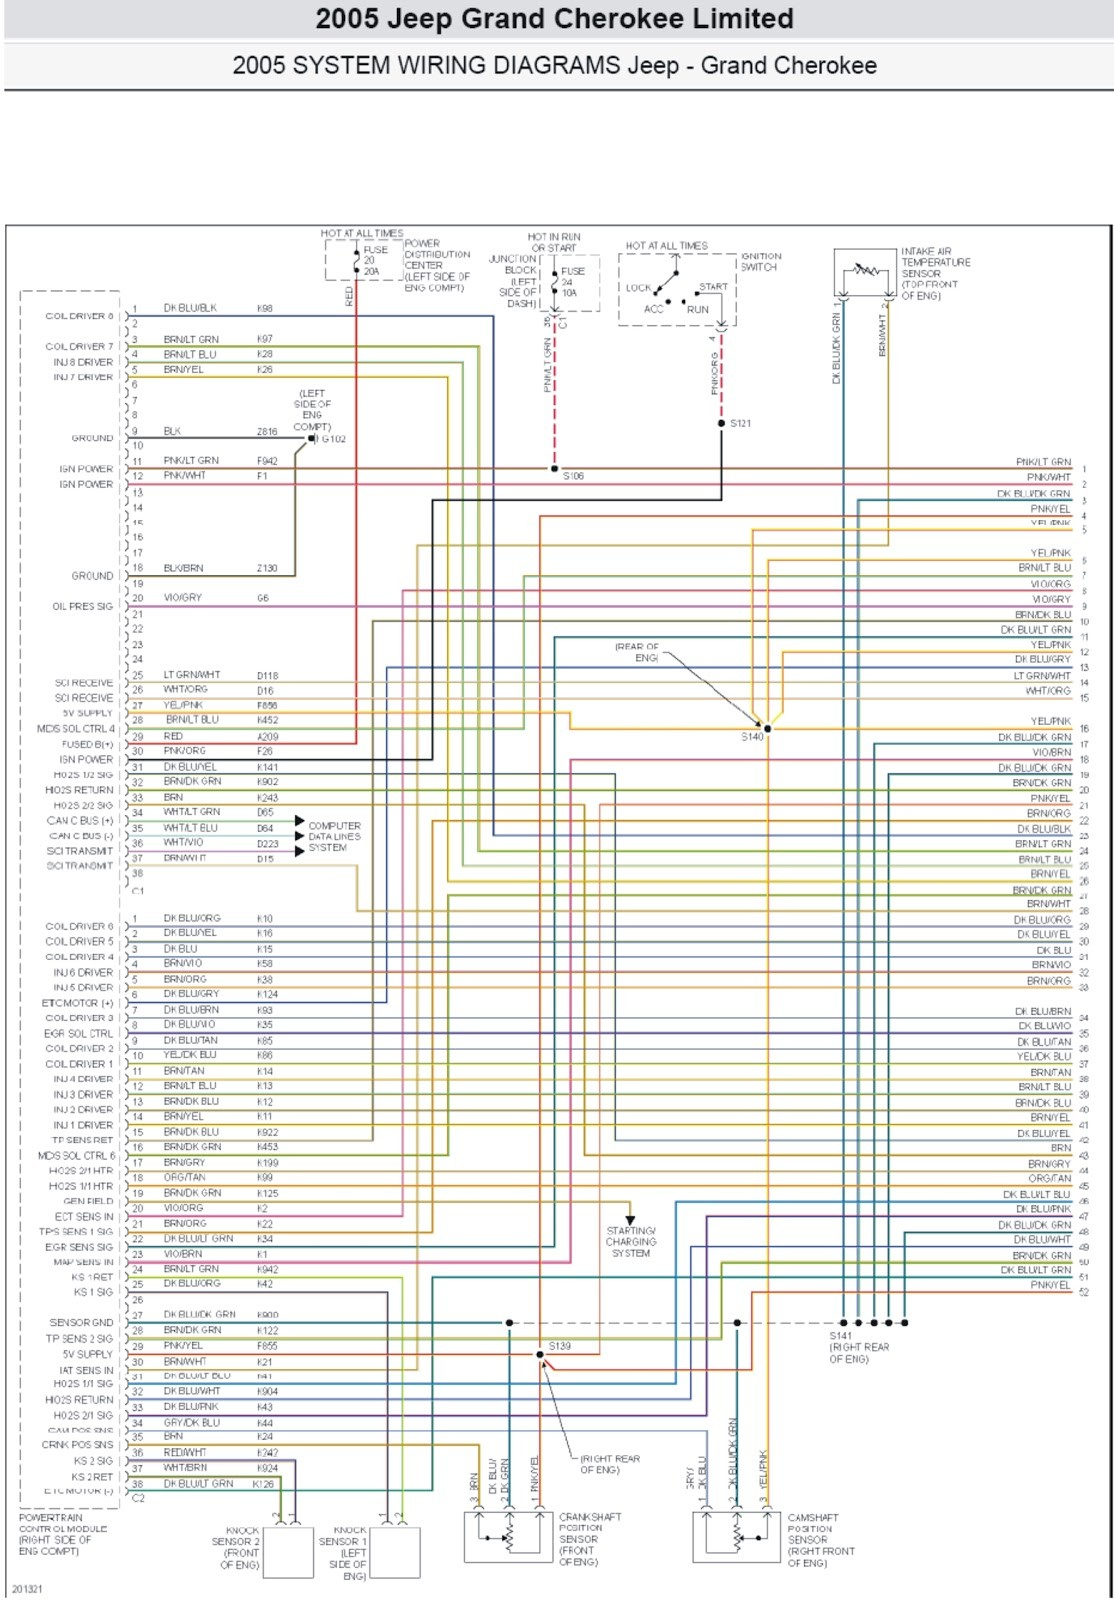 2005 SYSTEM WIRING DIAGRAMS Jeep Grand Cherokee